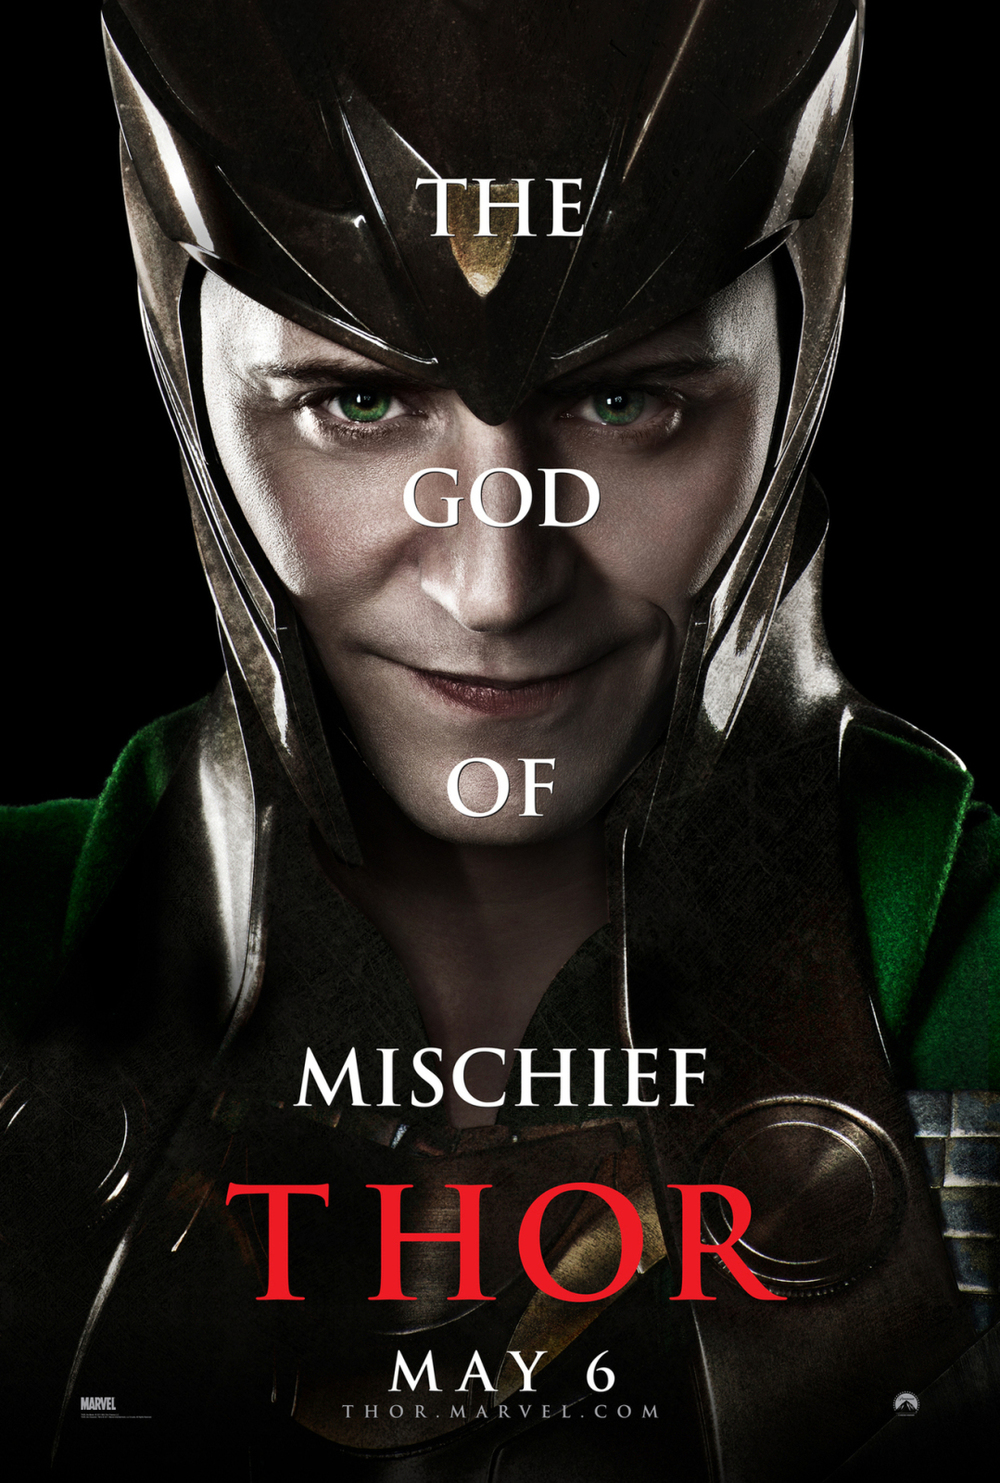 2 New Character Posters for THOR - 1193.8KB